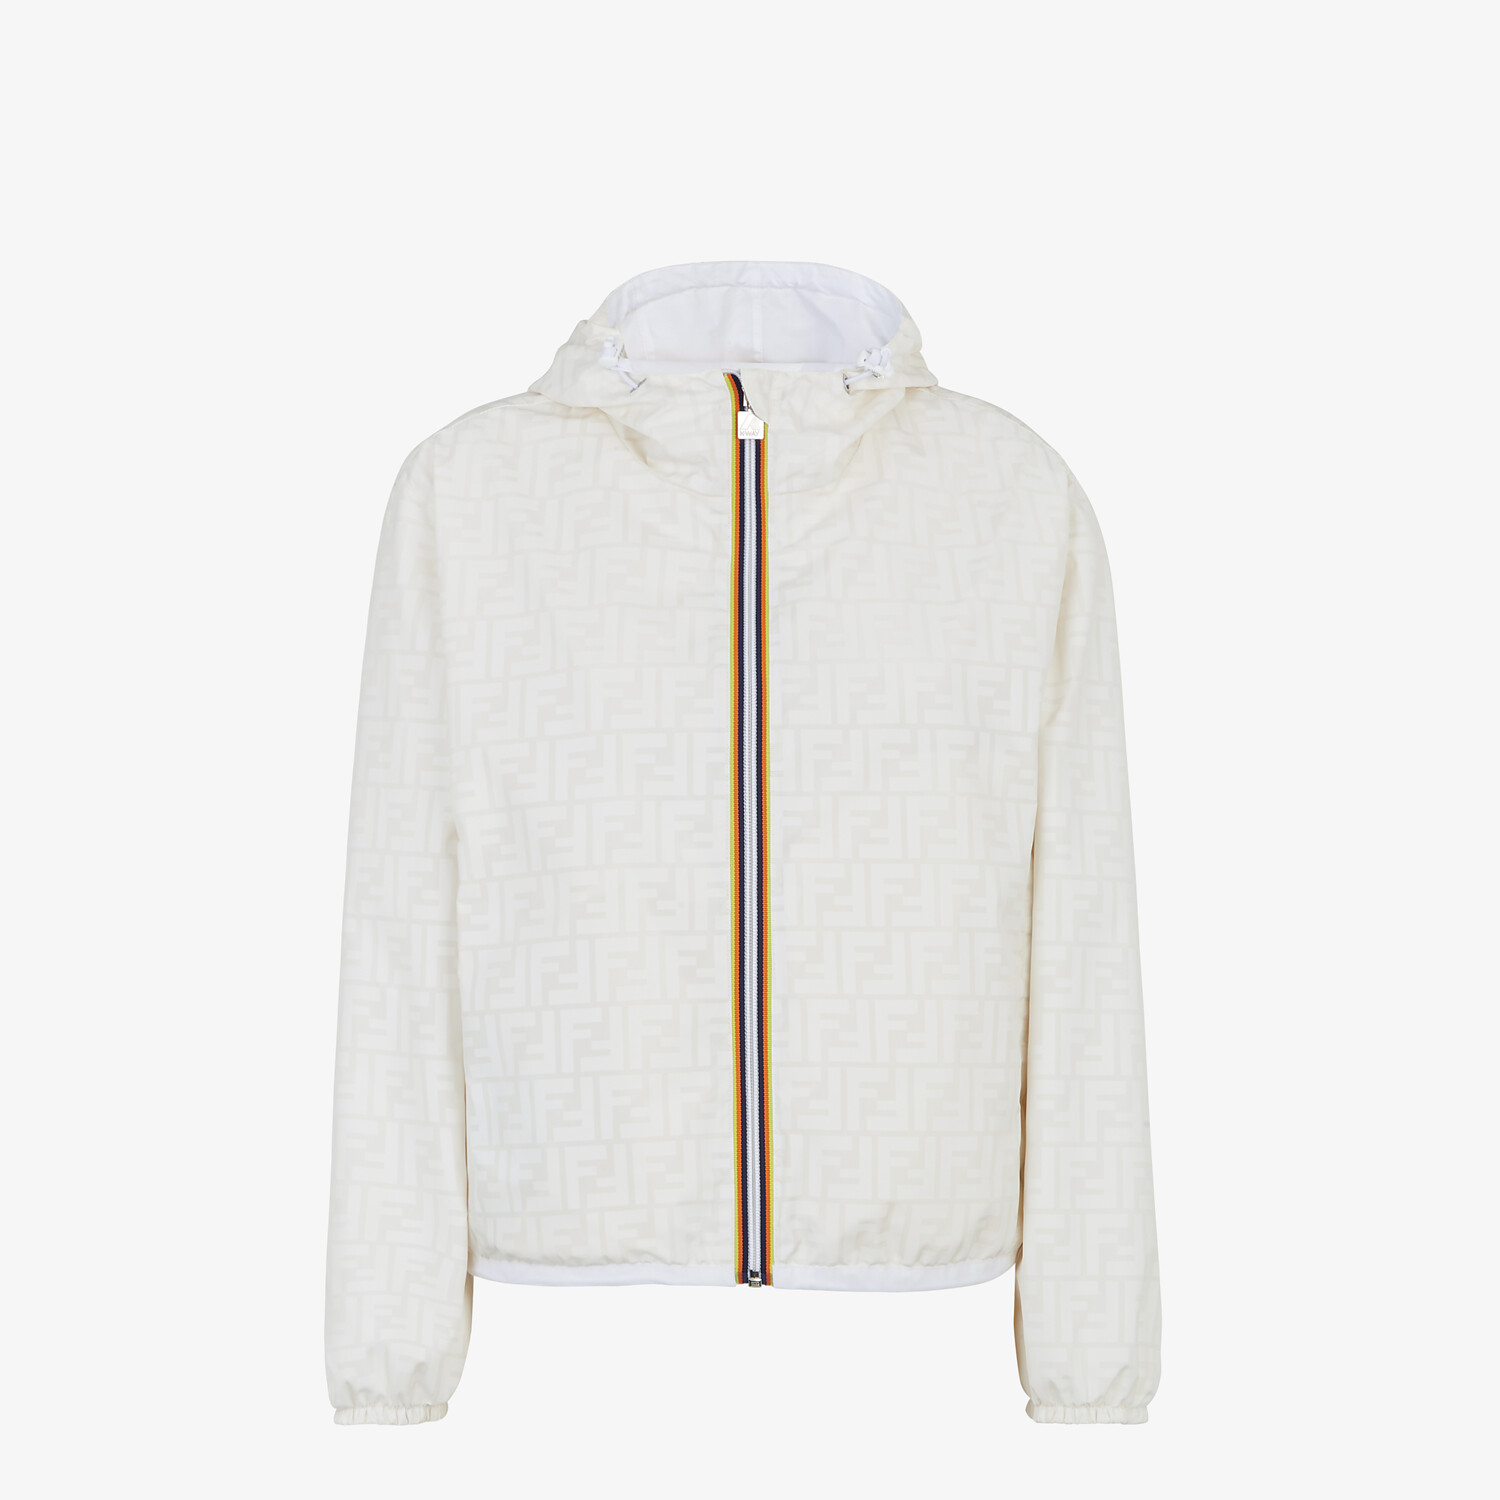 FENDI WINDBREAKER - White nylon FENDI x K-Way® jacket - view 1 detail